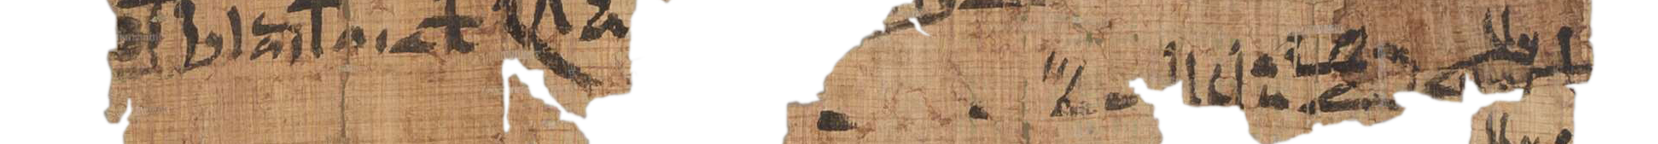 the Turin king list 4.6 (photo of the hieratic text)